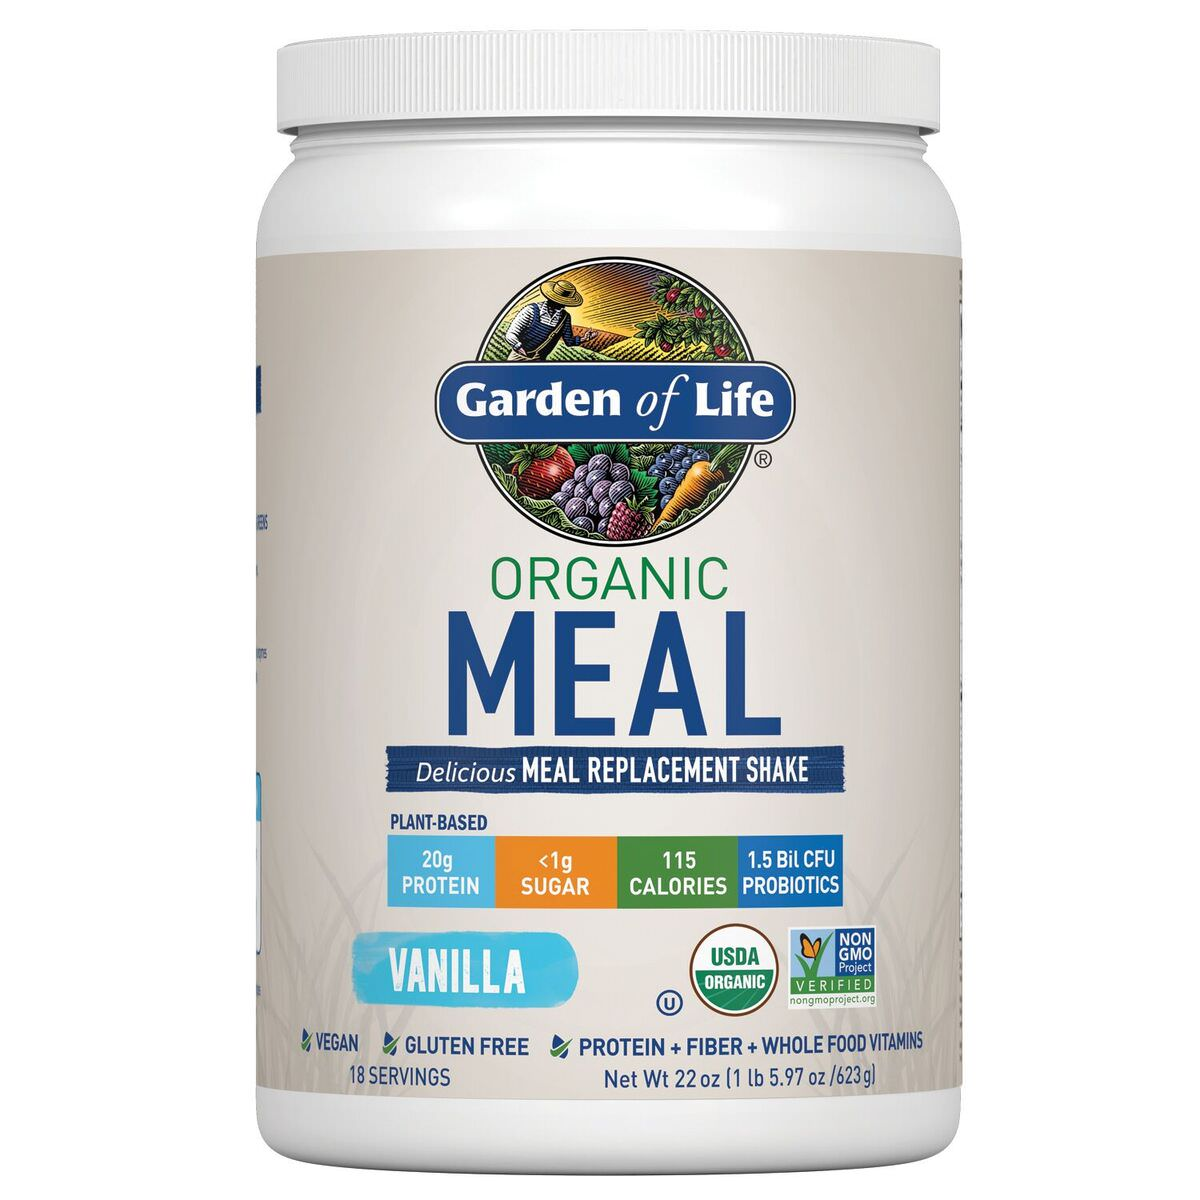 Garden of Life Organic Meal Replacement Powder, Vanilla, 1.4 Lb